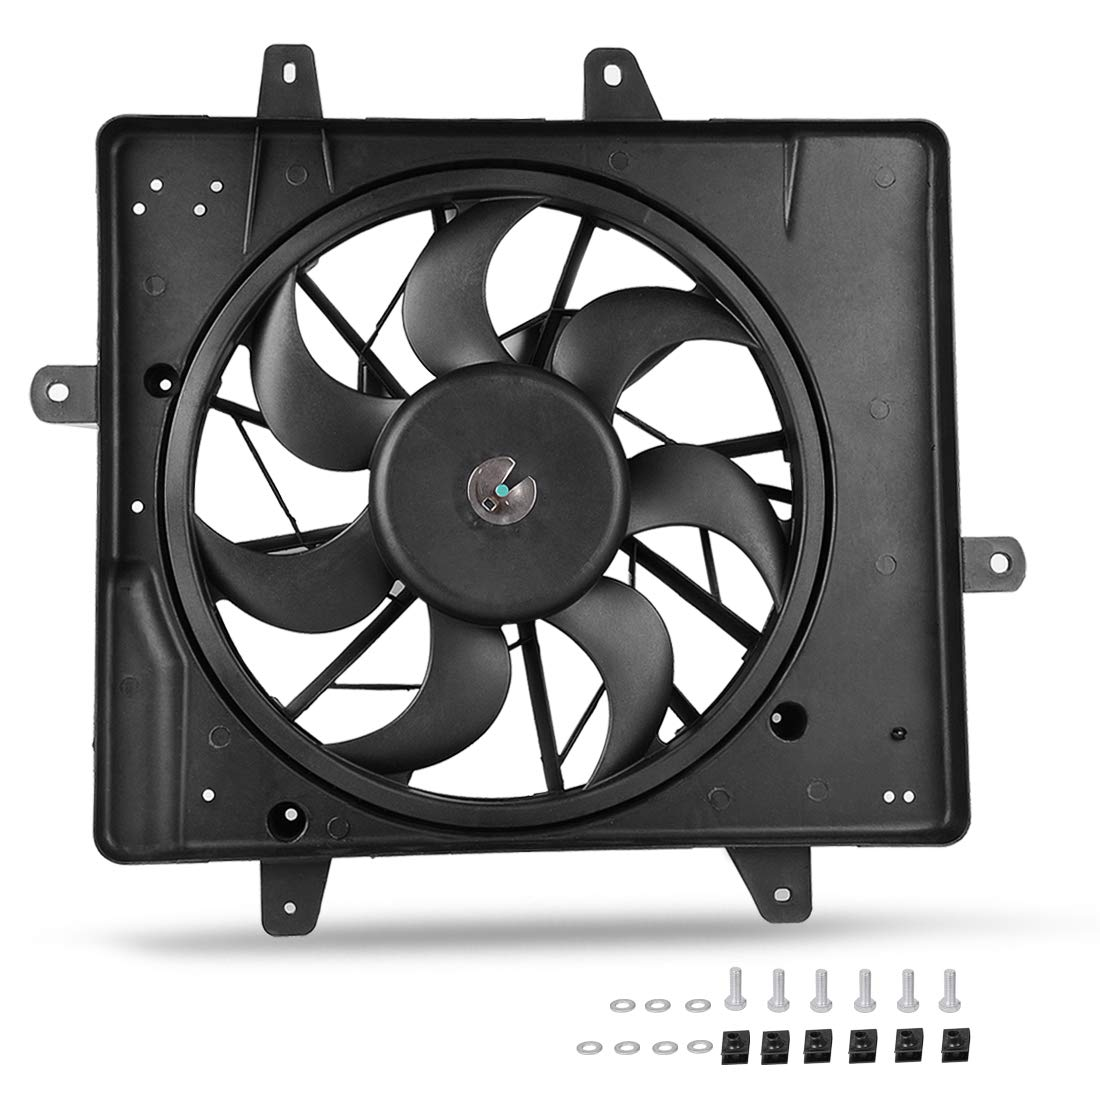 Radiator Condenser Cooling Fan Assembly For 2001-2008 Chrysler PT Cruiser ATRDF016